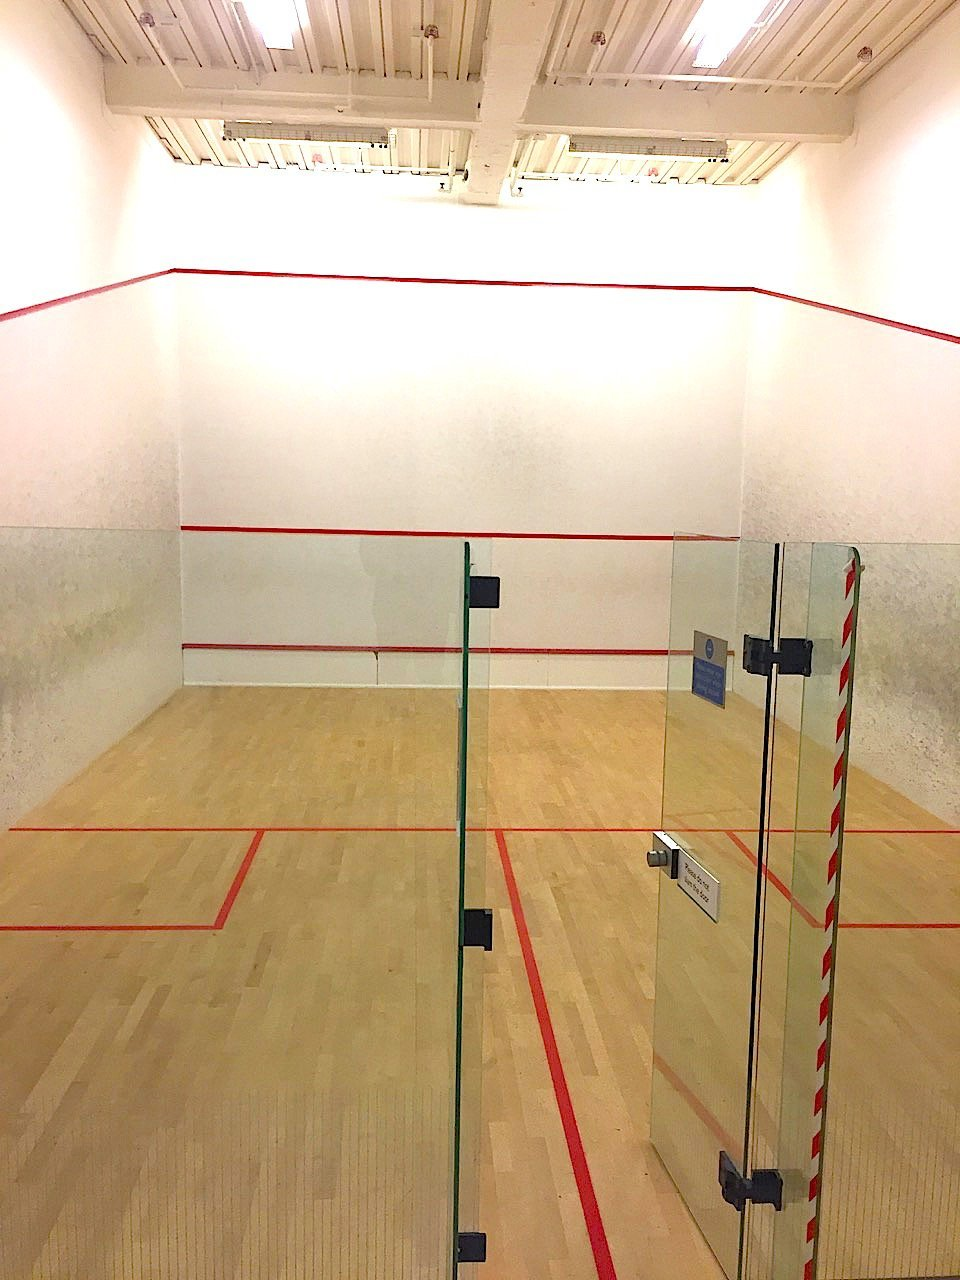 -as-well-as-four-full-sized-squash-courts-